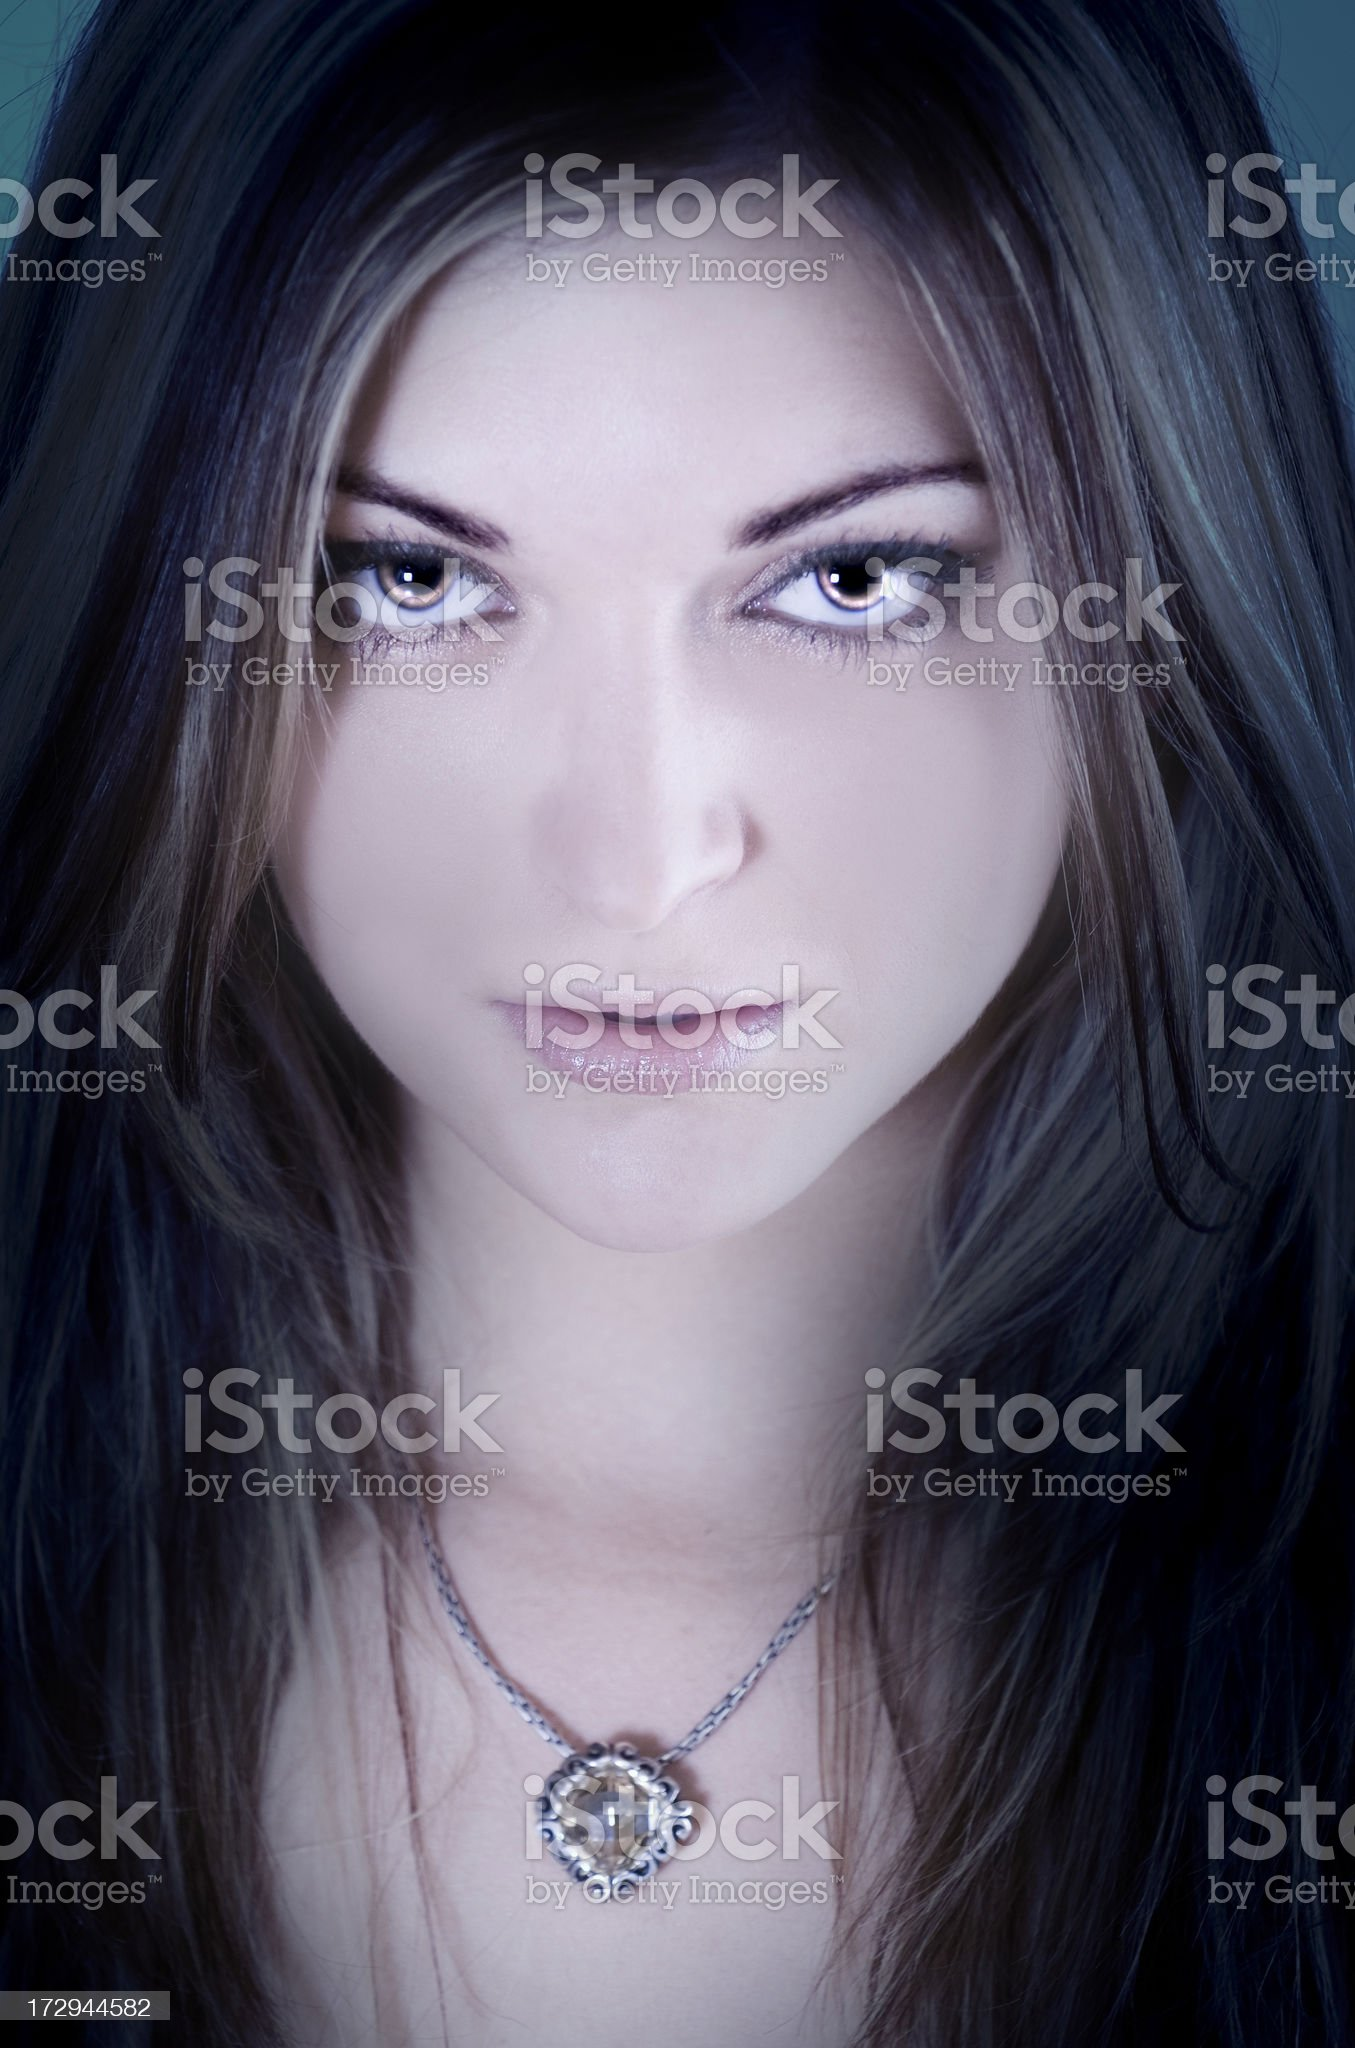 Intense Woman Stares Into Camera royalty-free stock photo